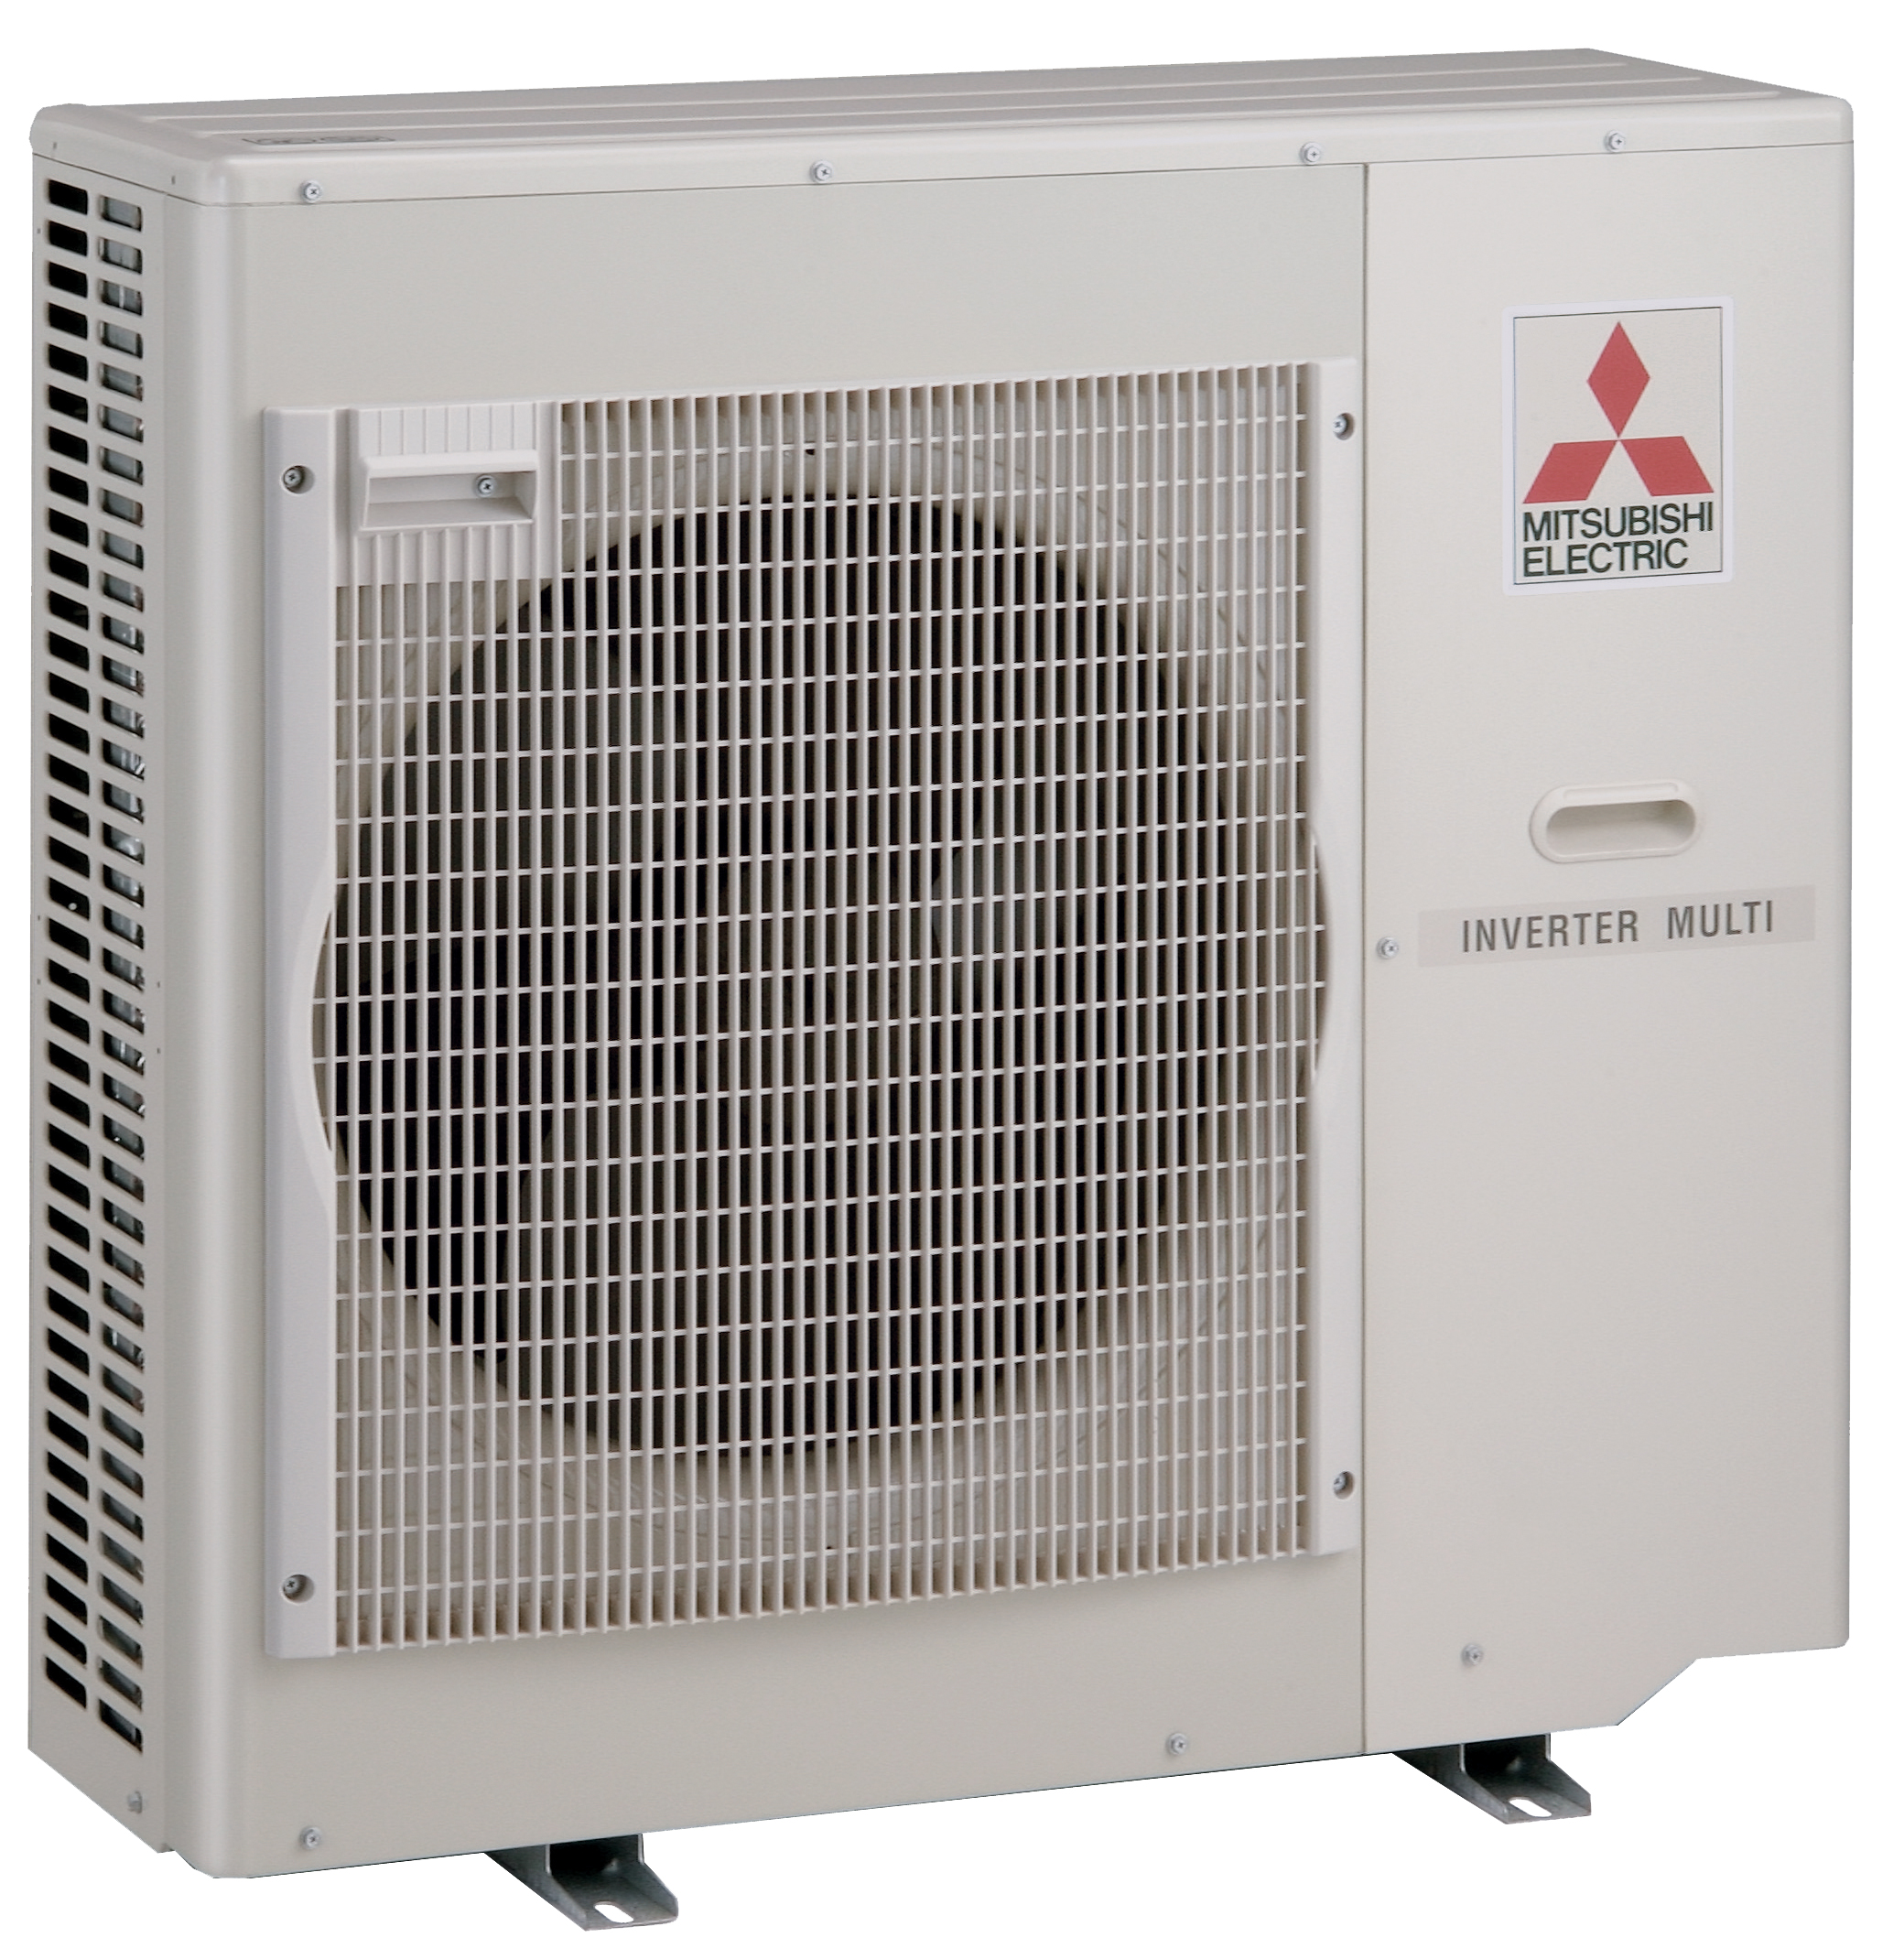 hvac installation s chicago air heating and near heater me il aircor conditioner furnace gas ventilating comforter lincolnwood conditioning comfort contractor contractors